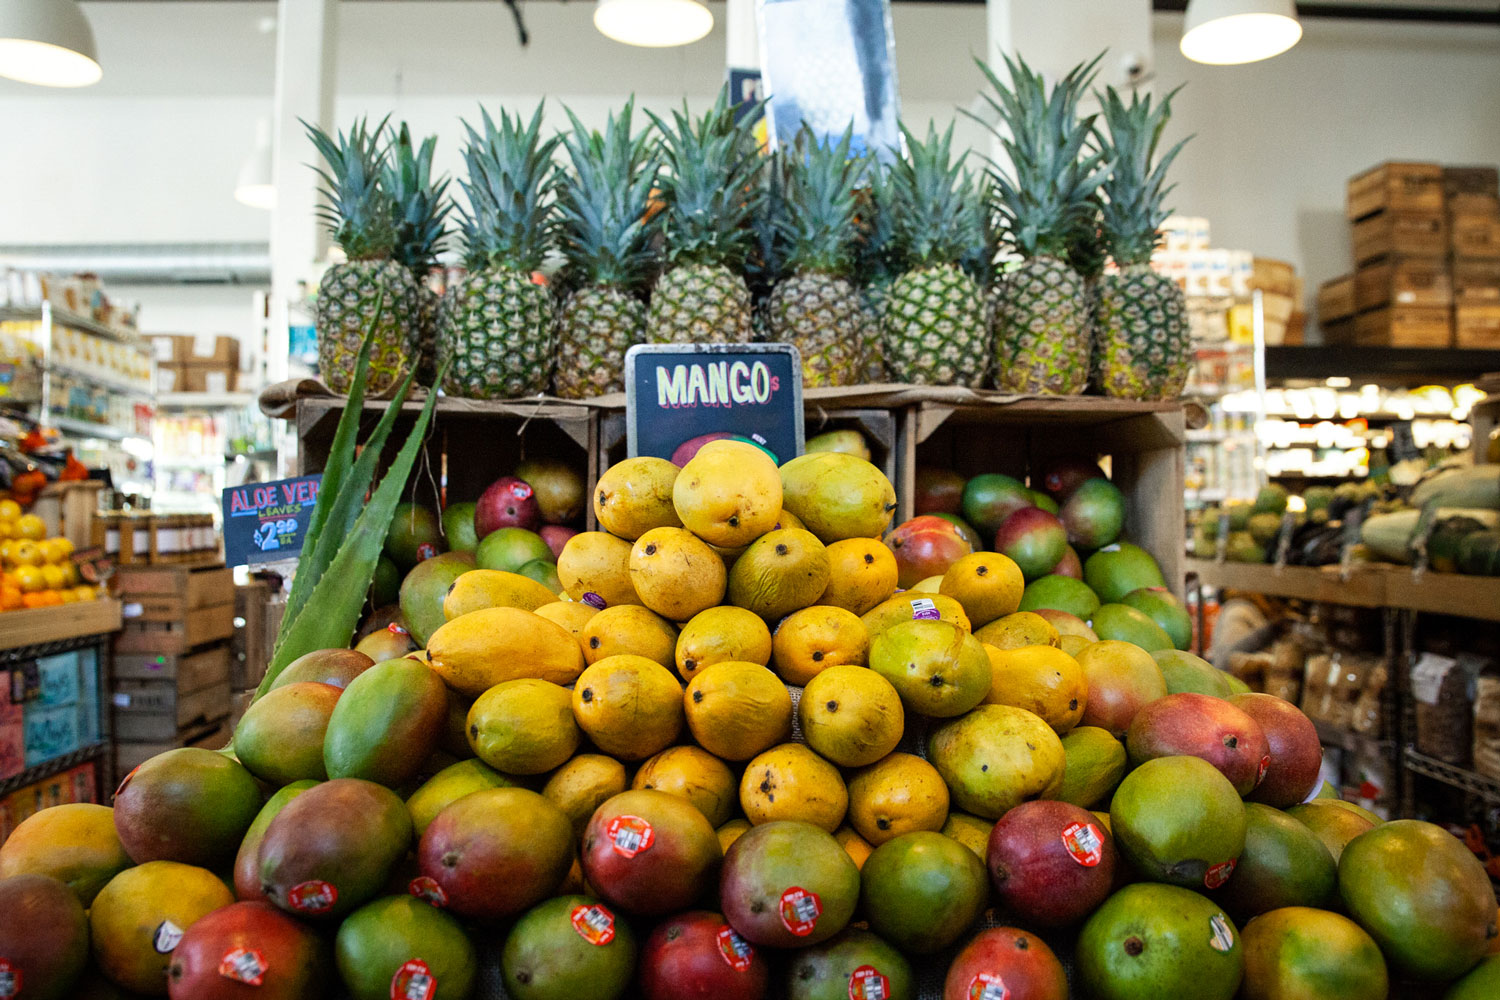 Piles of mangoes and pineapples out on display.